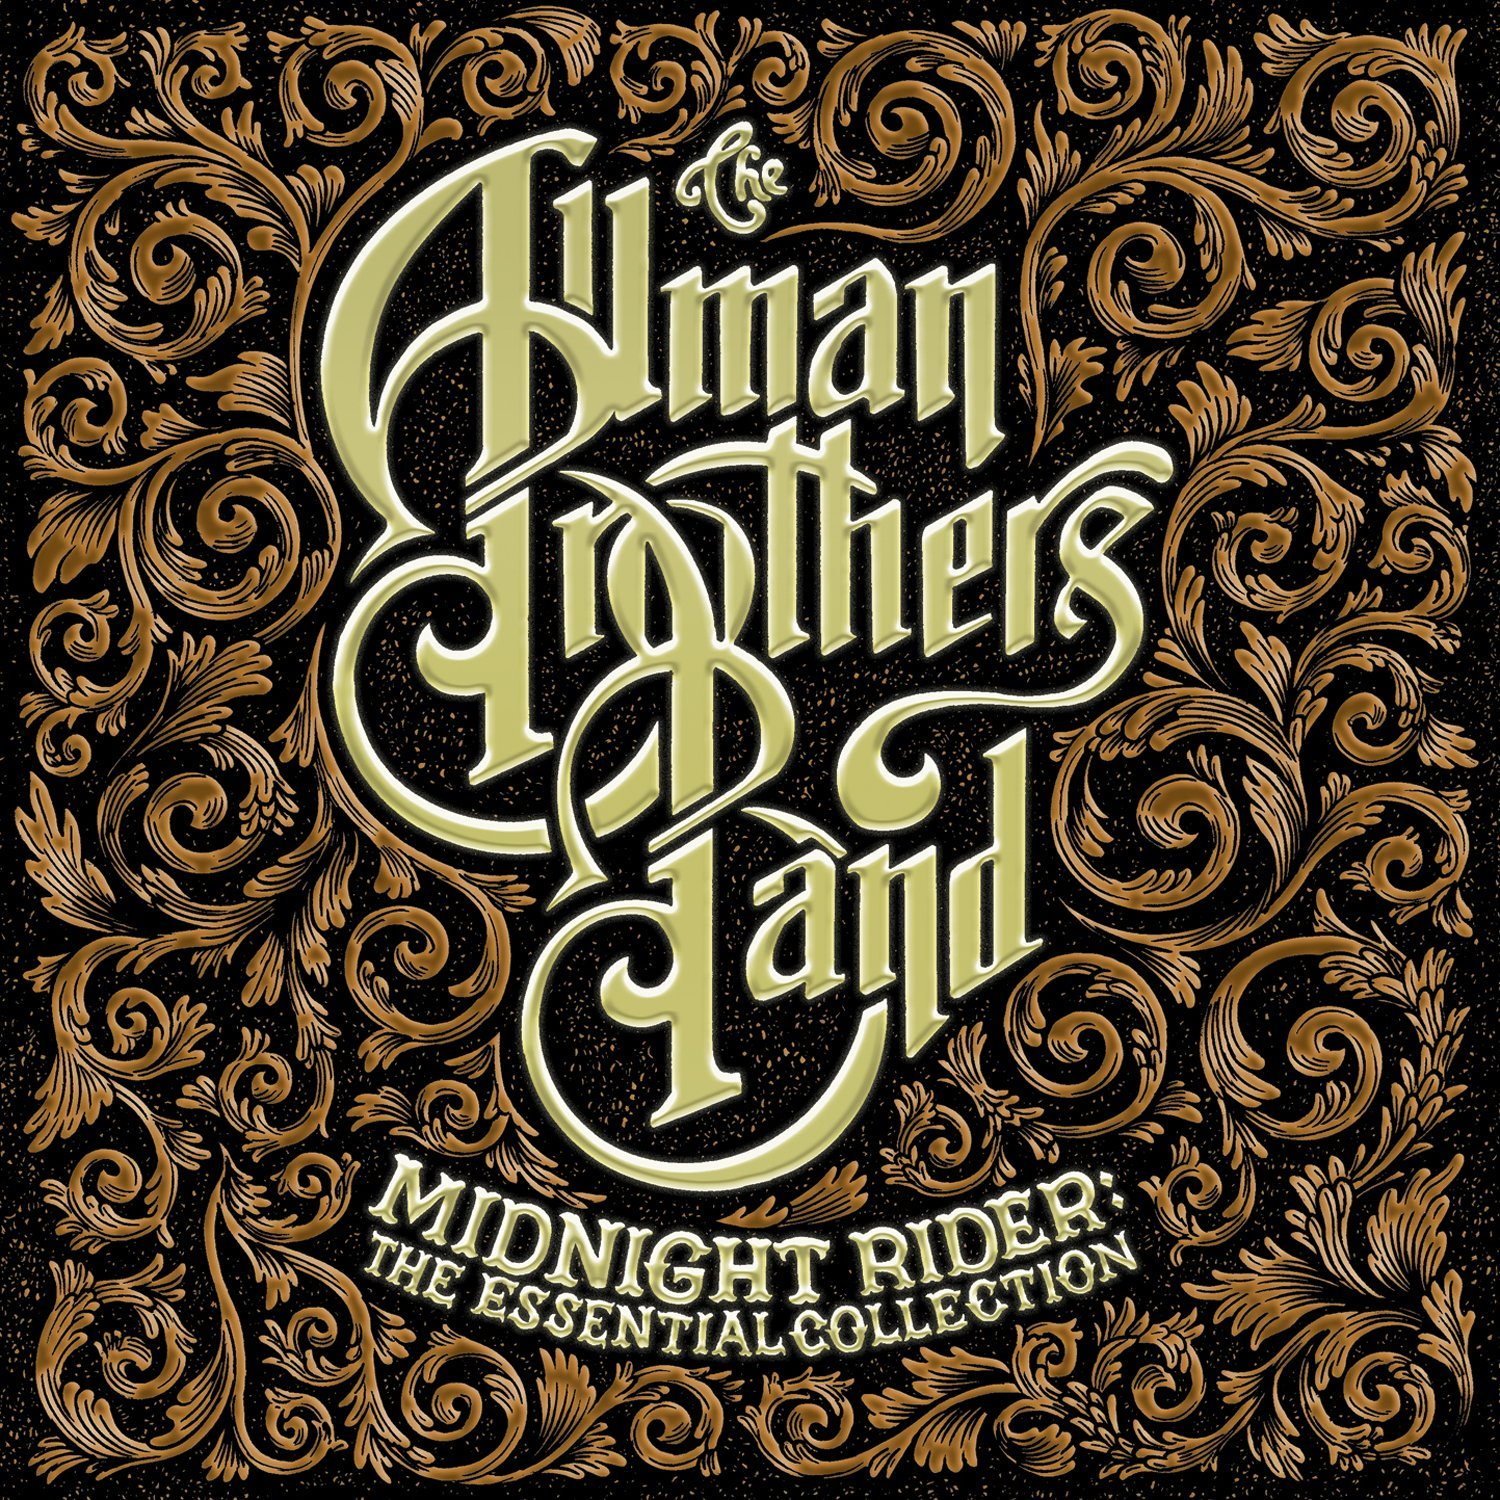 Midnight Rider: The Essential Collection: Amazon.co.uk: Music